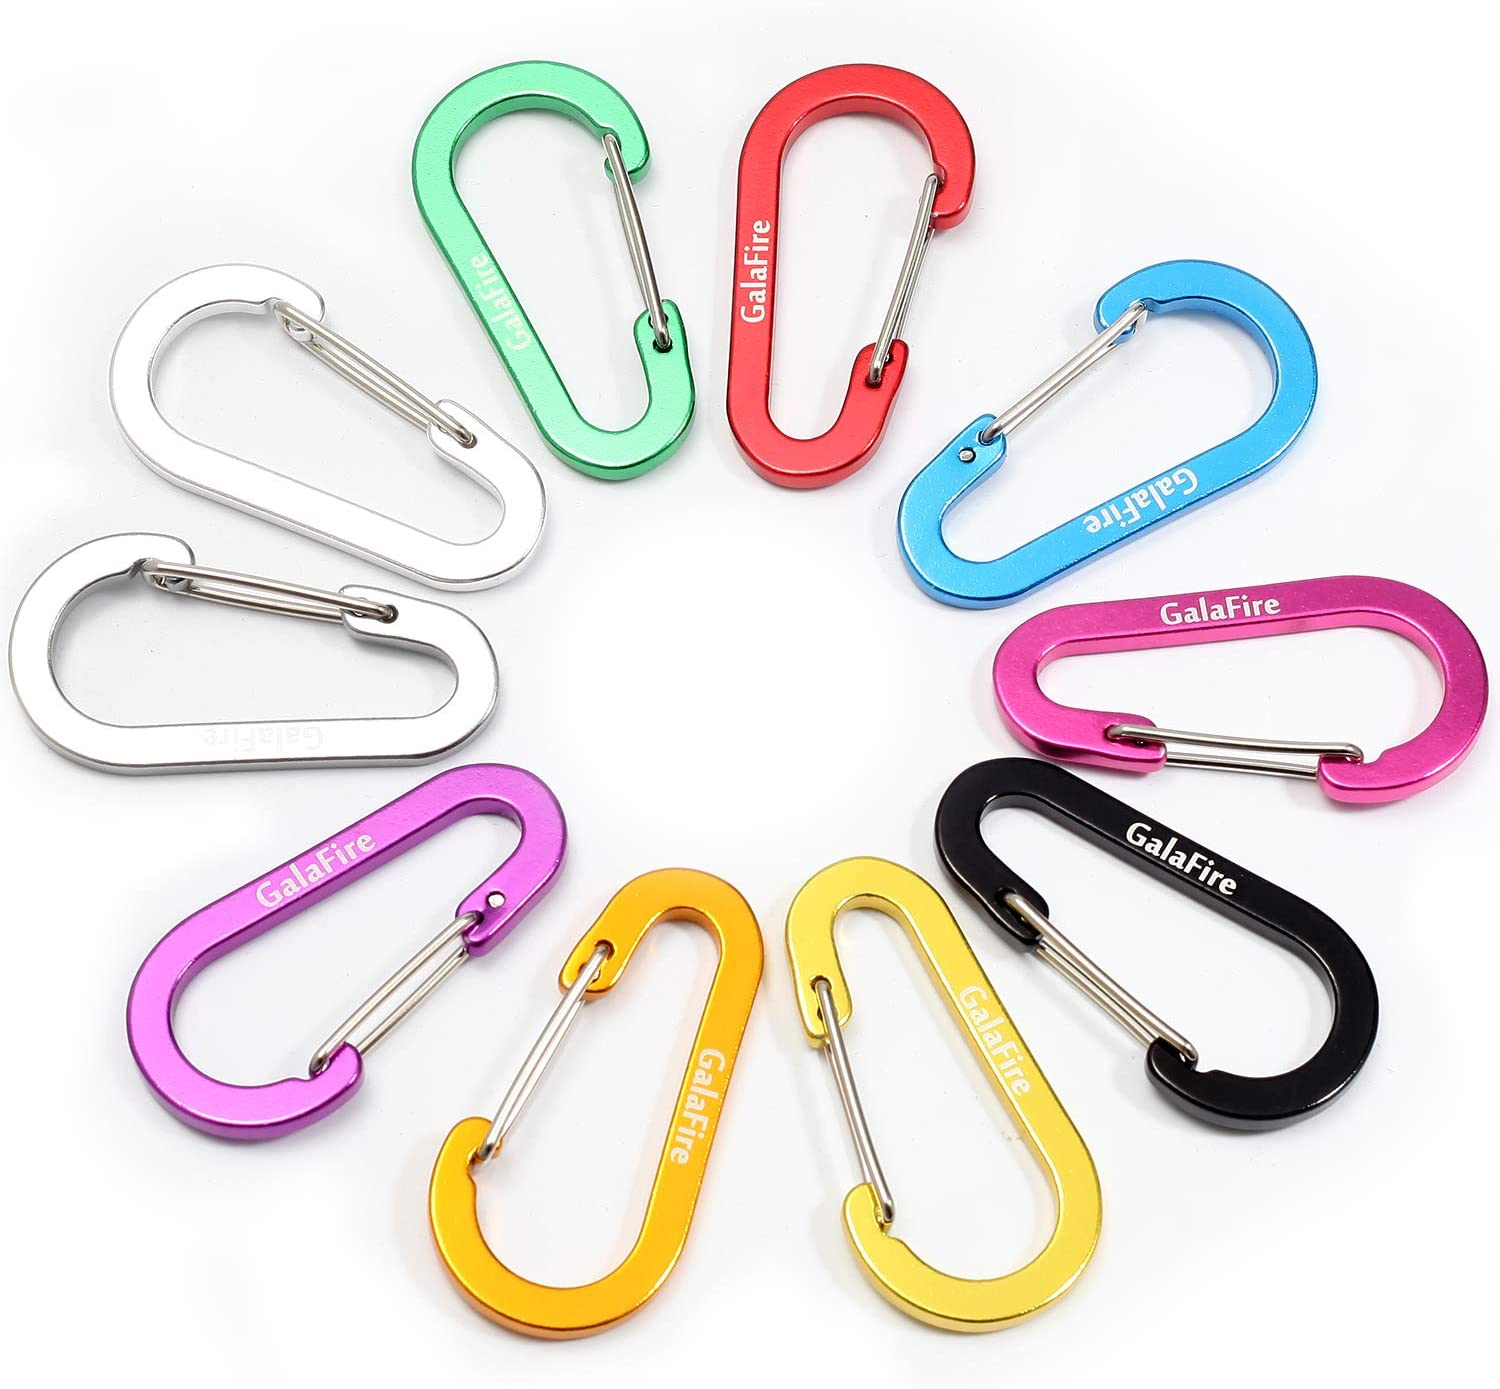 "GALAFIRE 10Pcs Carabiner Clip Small for Keys, Hiking, Camping, 2 3/8"" (6 cm), Aluminum, Assorted Colors, Not for Climbing"